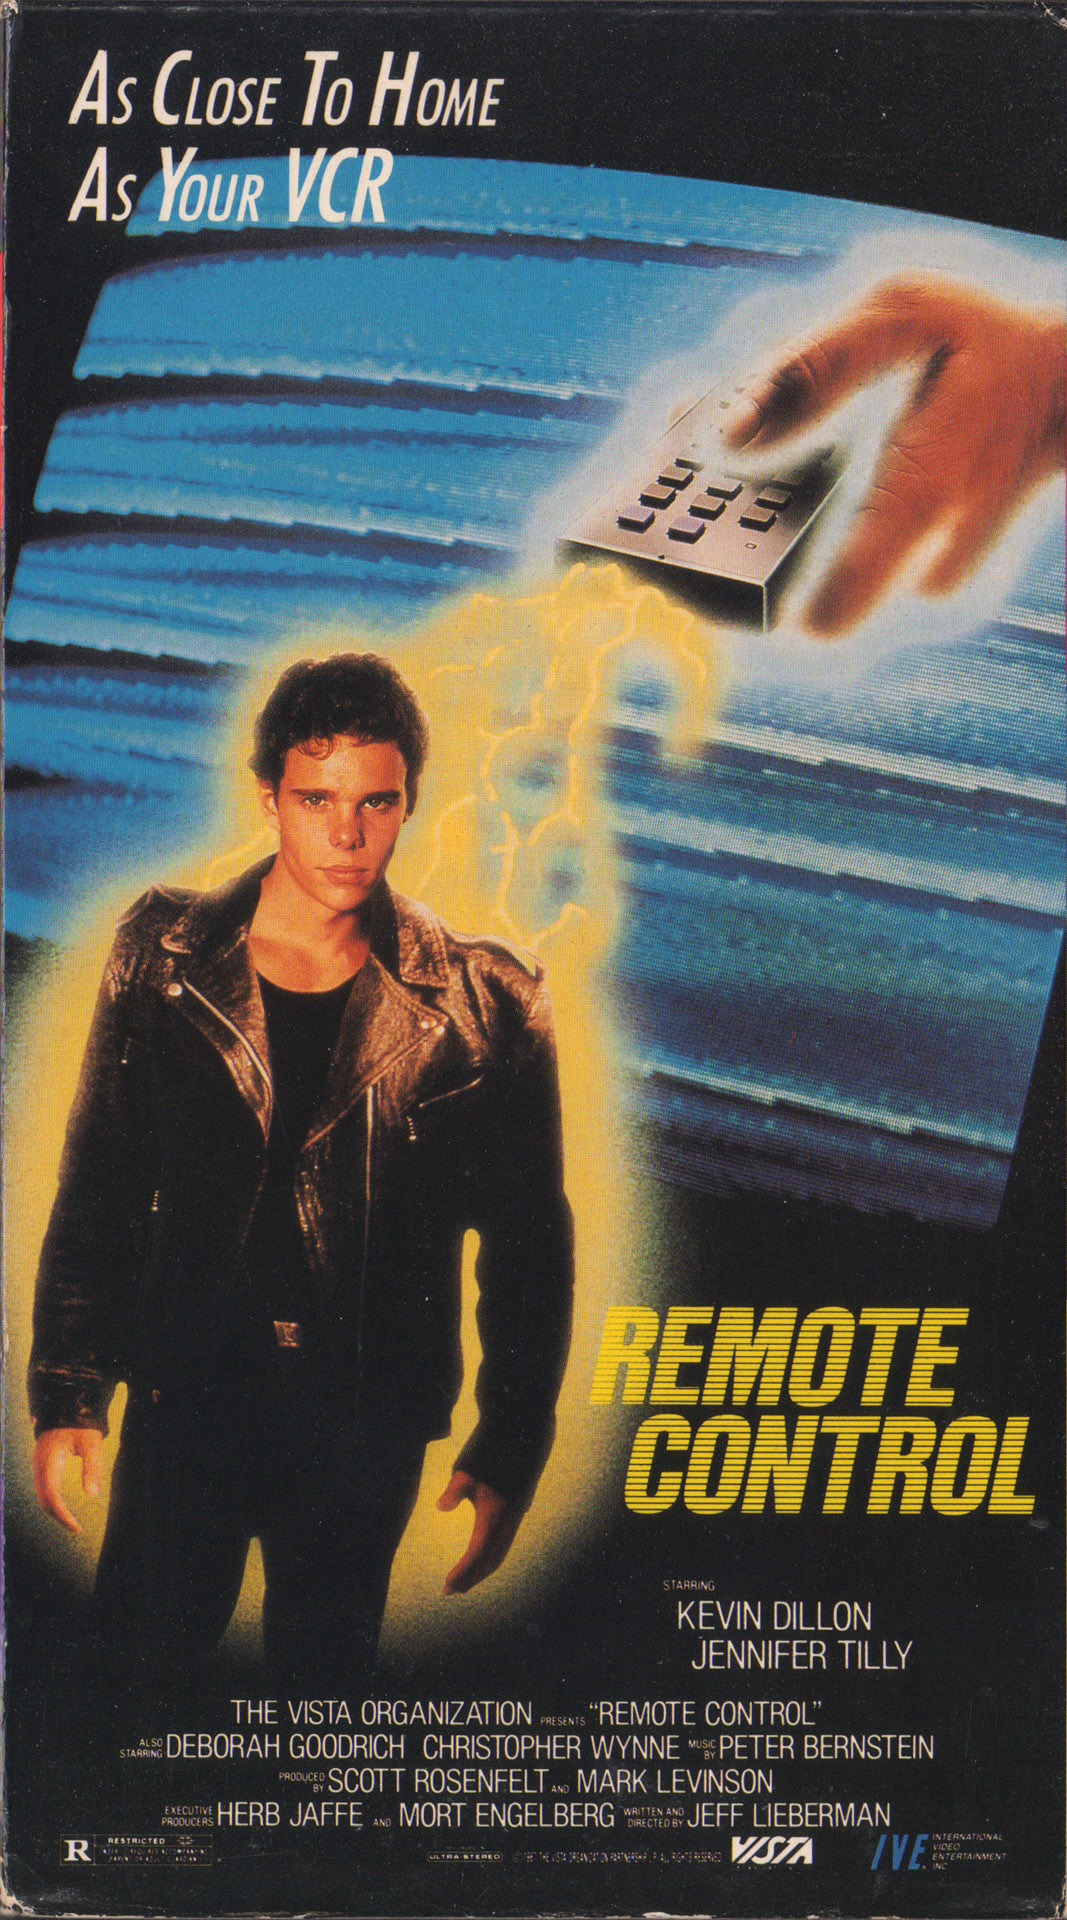 Remote Control (1988)  Comedy, Romance, Sci-Fi 04/07/88 - R :  A video store clerk stumbles onto an alien plot to take over earth by brainwashing people with a bad '50s science fiction movie. He and his friends race to stop the aliens before the tapes can be distributed world-wide.